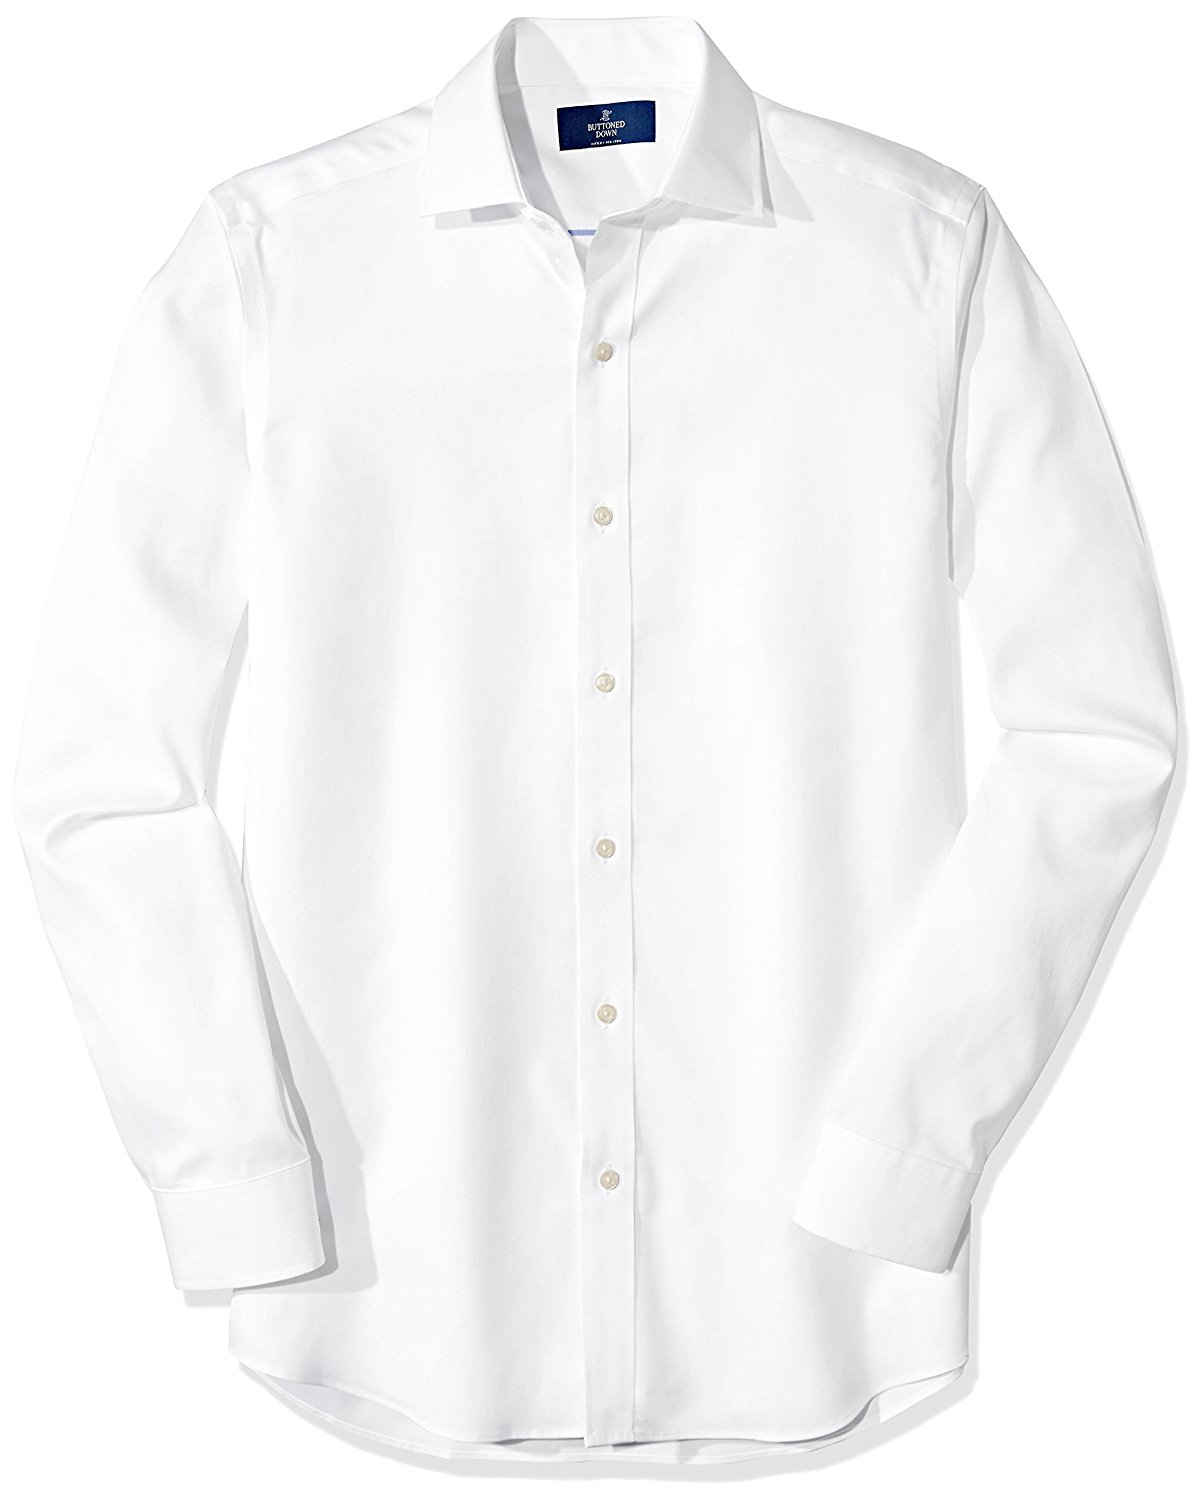 Menswear Shirt